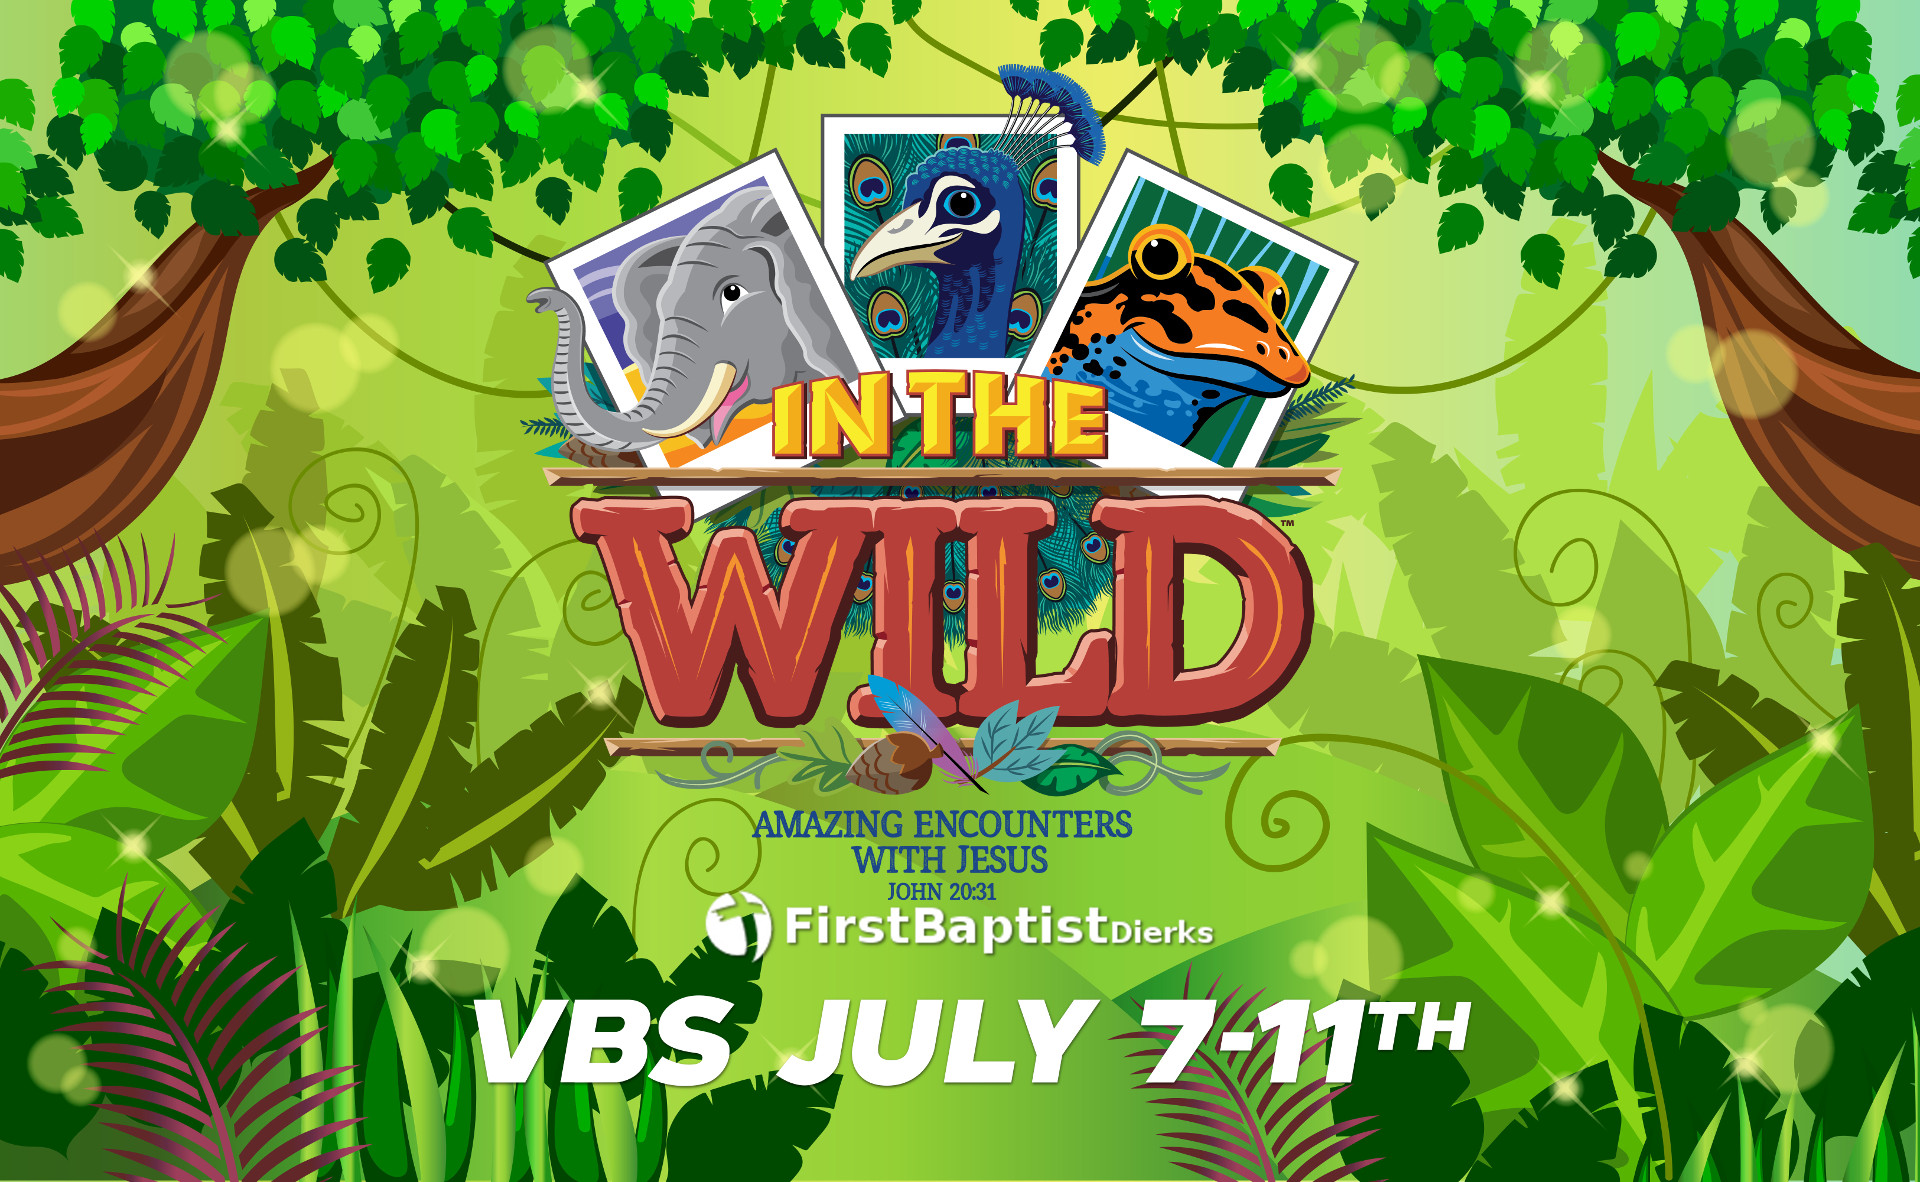 VBS July 7-11th